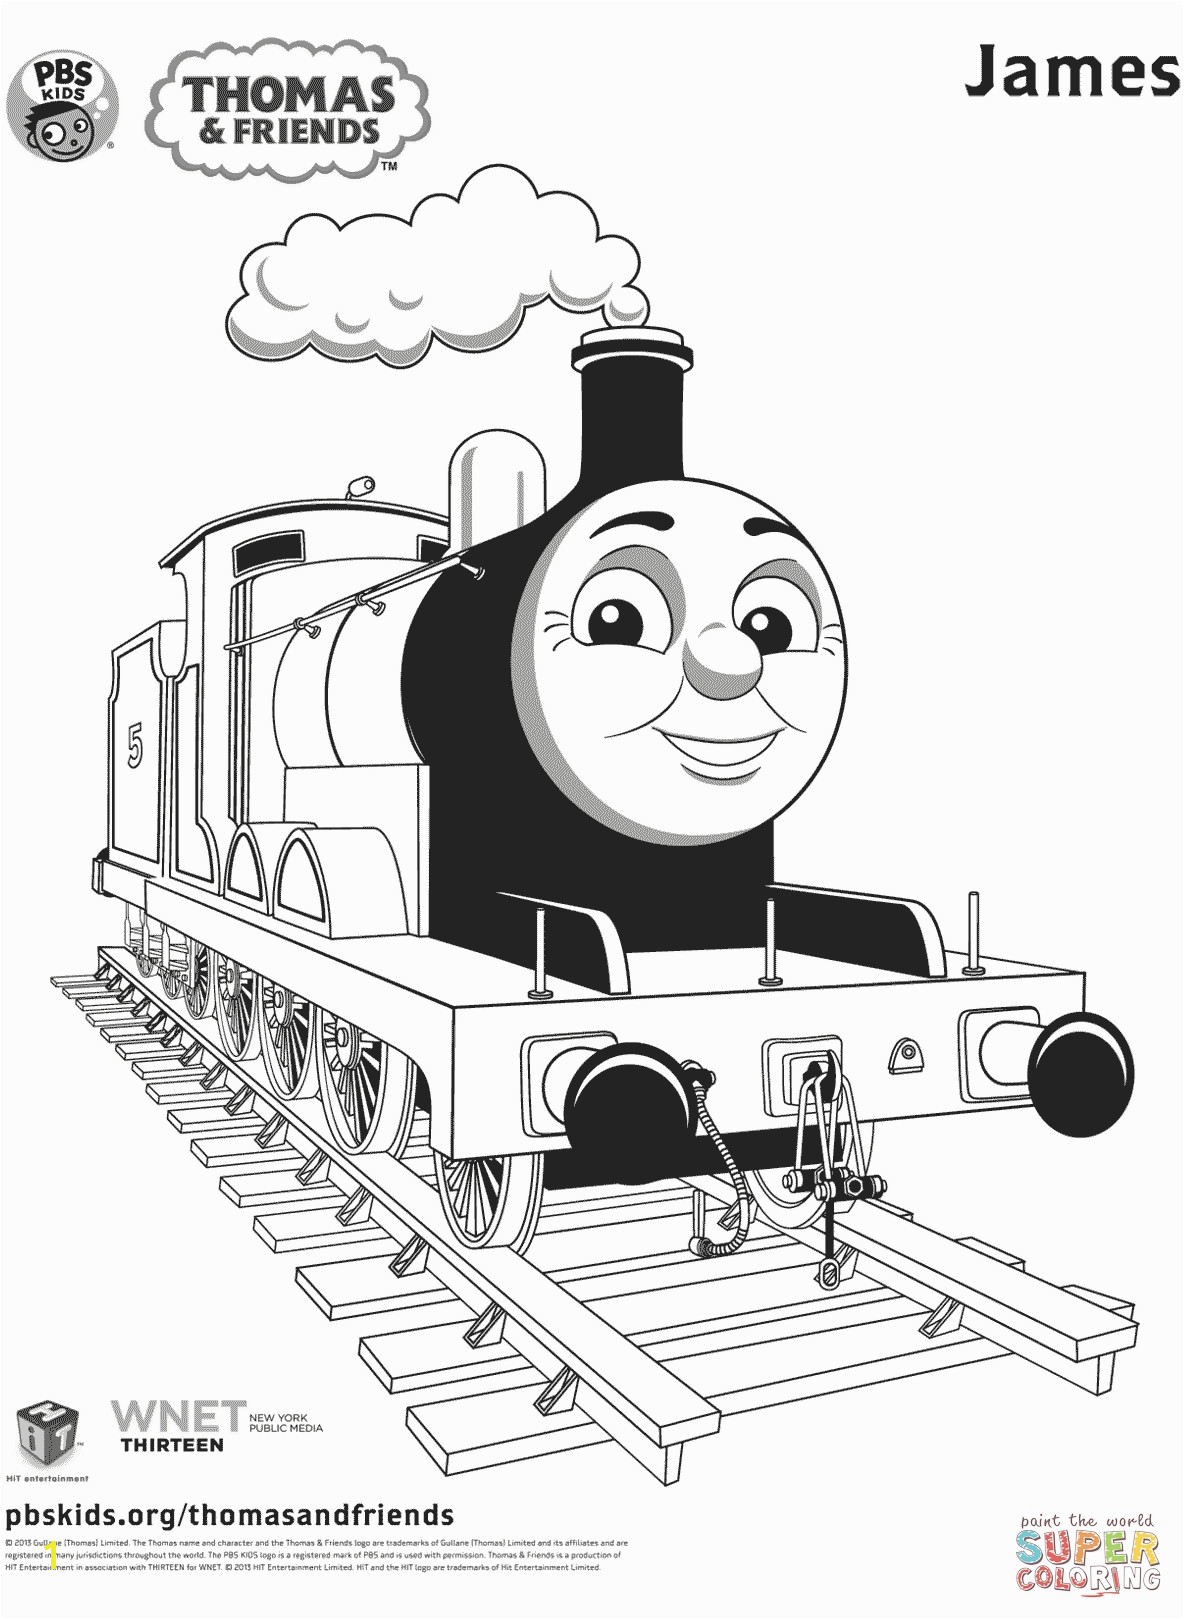 ashima train coloring Thomas Coloring Page thomas friends coloring pages free coloring pages sheets